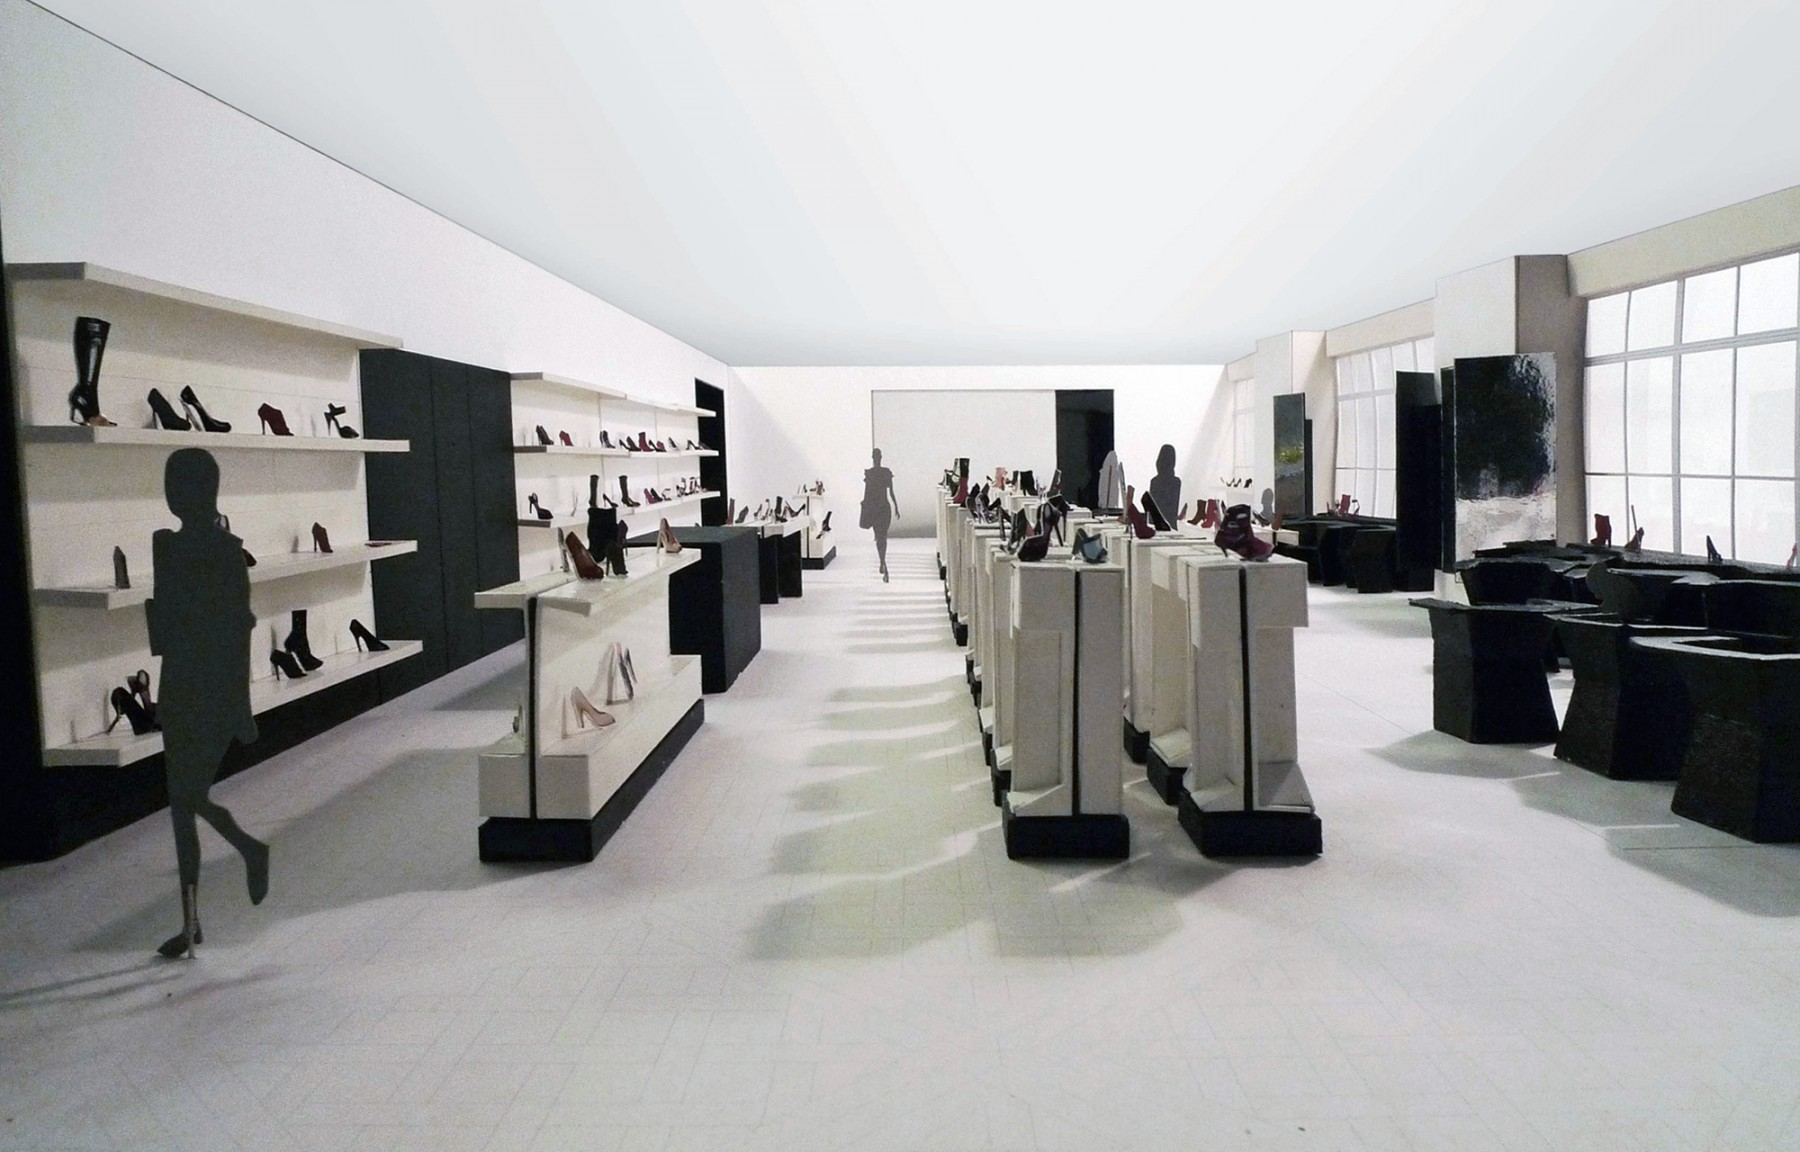 Selfridges-London-designer-fashion-retail-Jamie-Fobert-Architects-shoe-galleries-alabaster-plinths-model